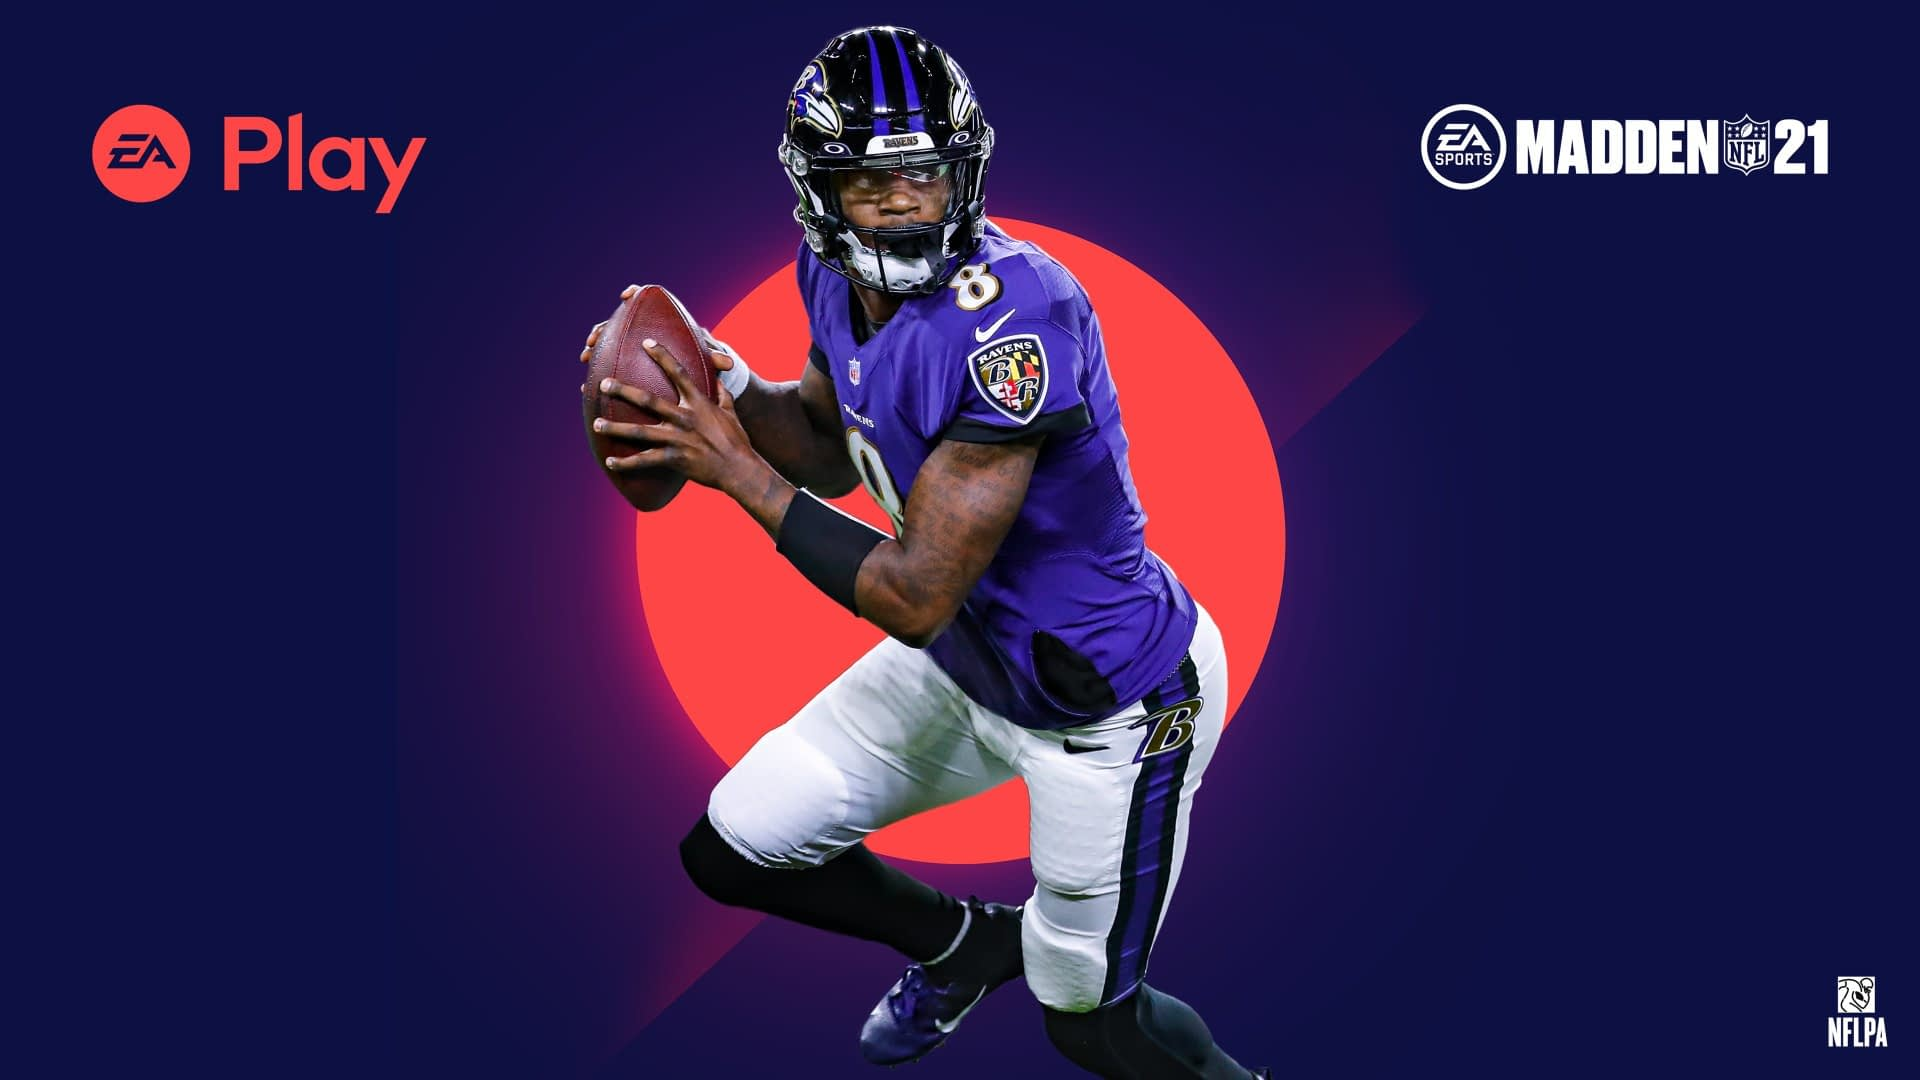 Xbox Game Pass: Go All Out in Madden NFL 21 with EA Play 1